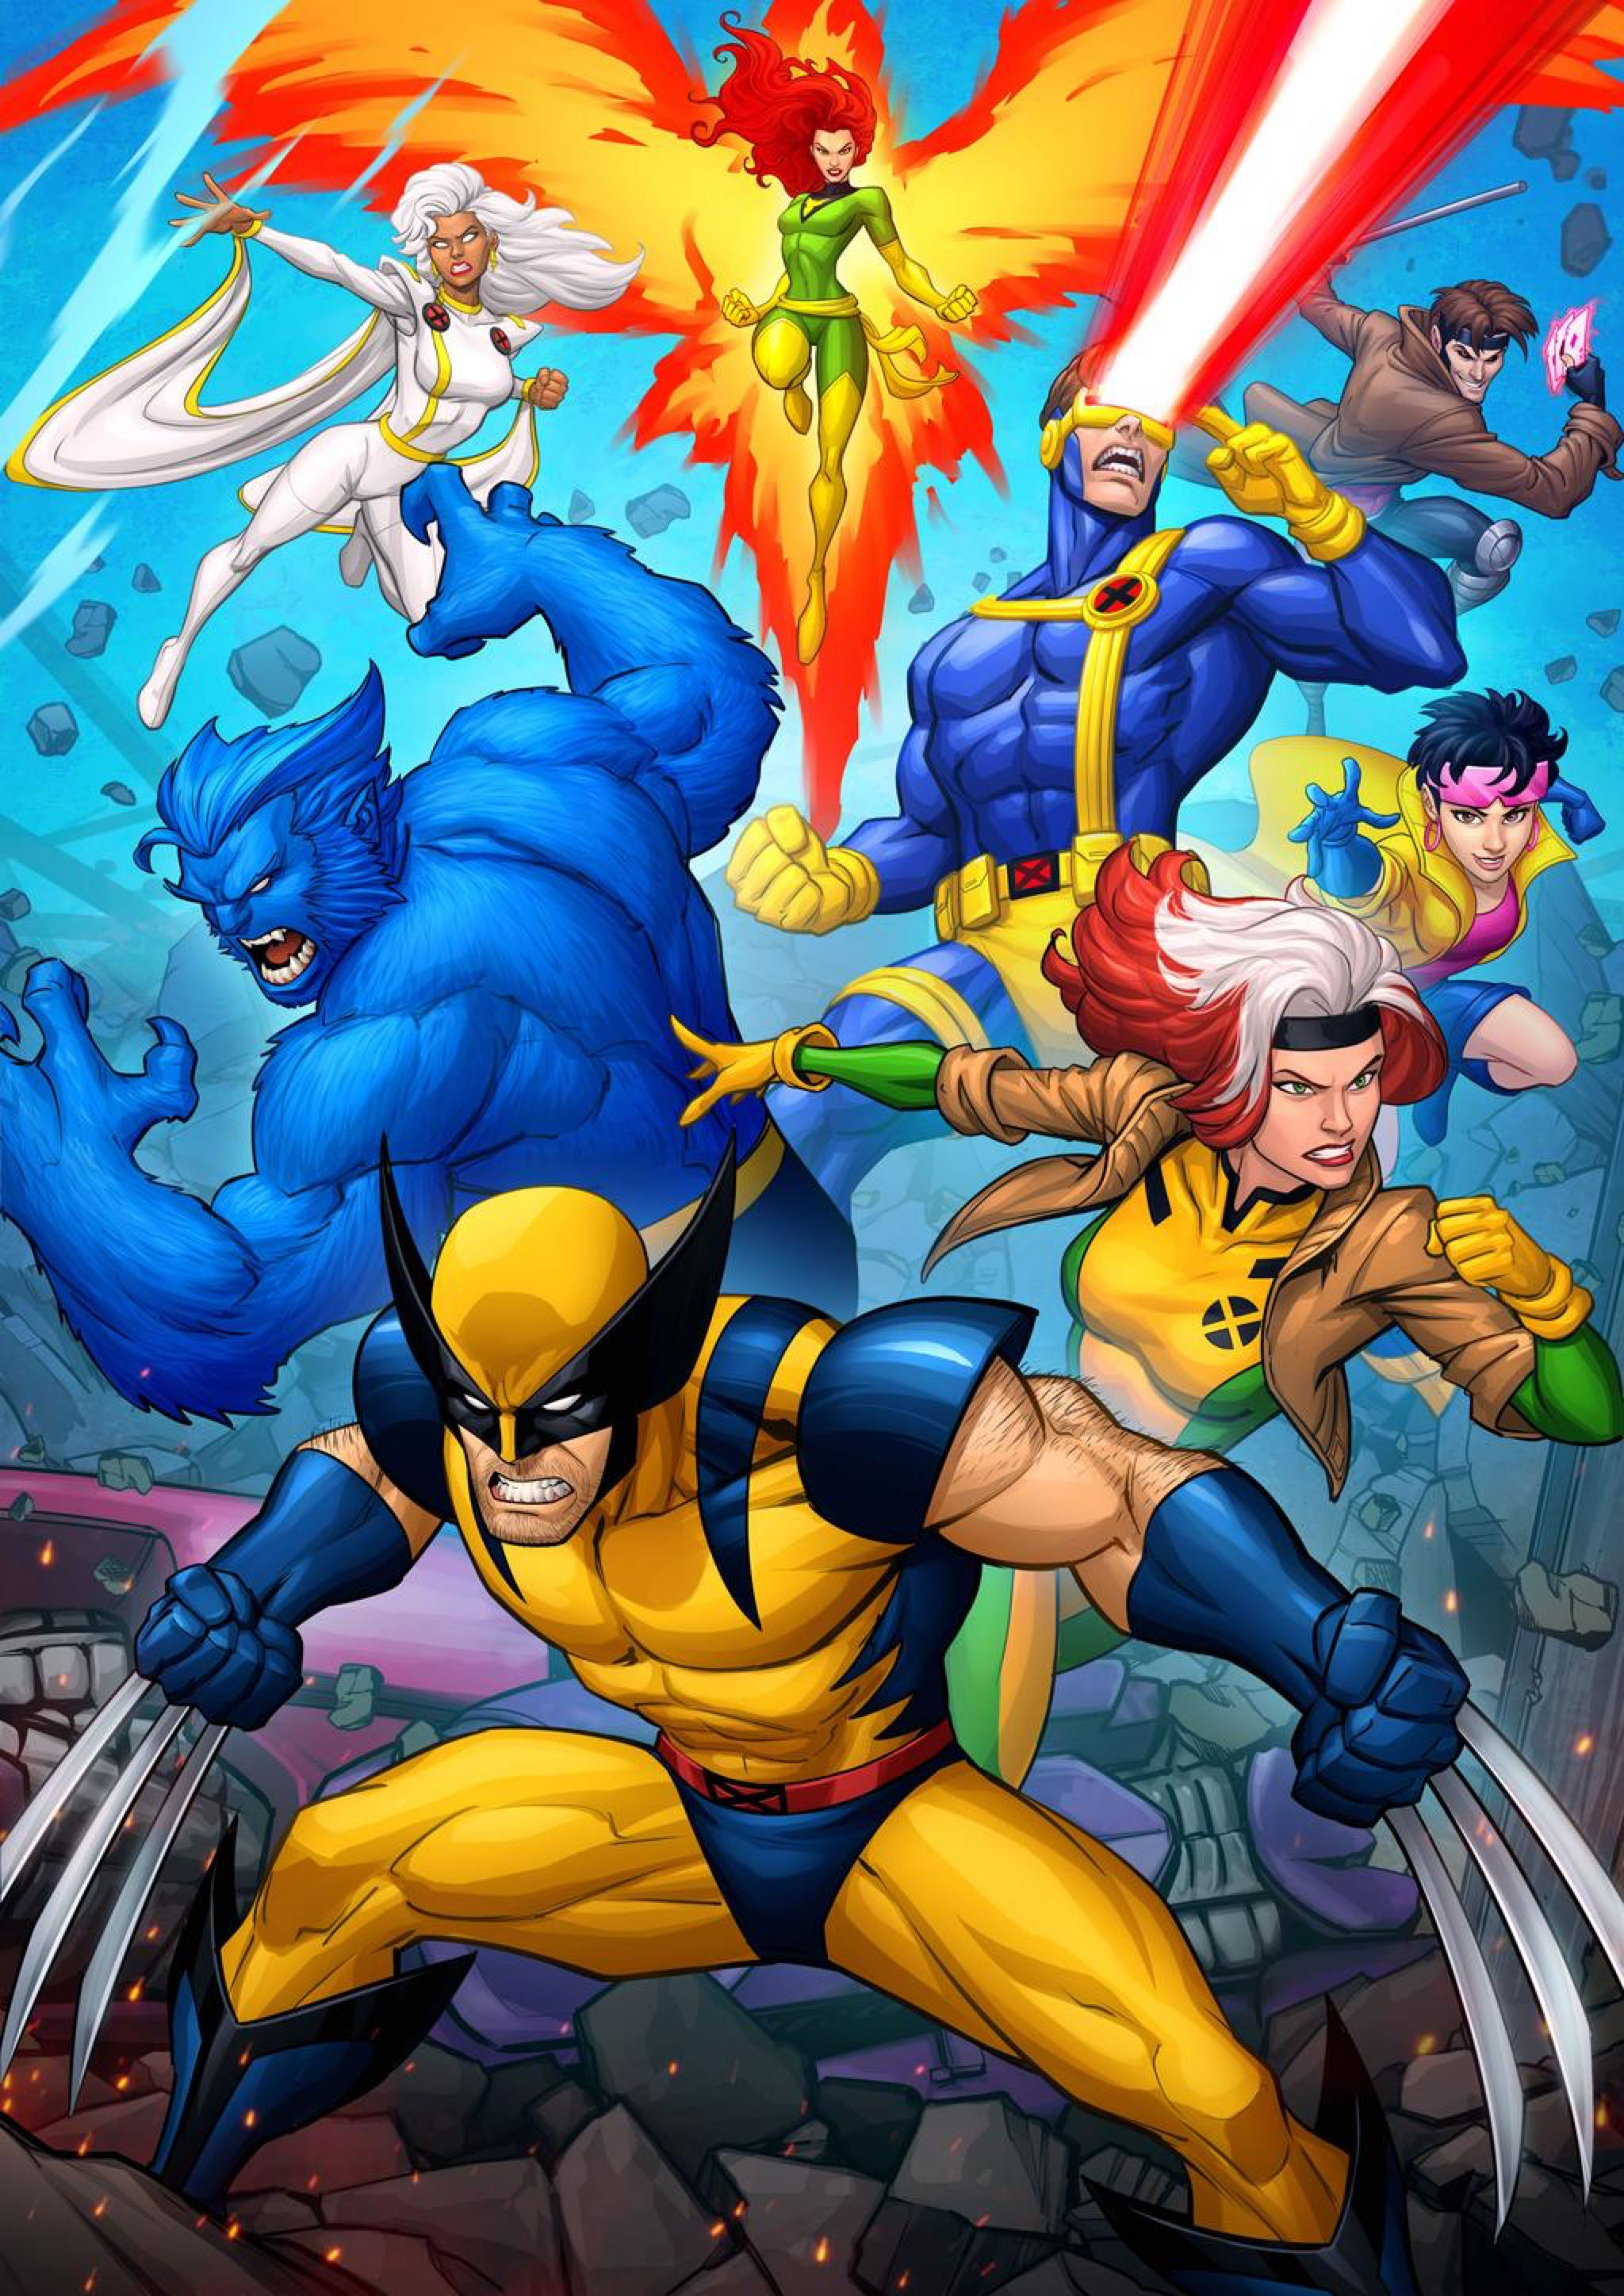 X Men 90s Animated Series By Patrickbrown On Deviantart Wolverine Art Wolverine Marvel Marvel Comics Art